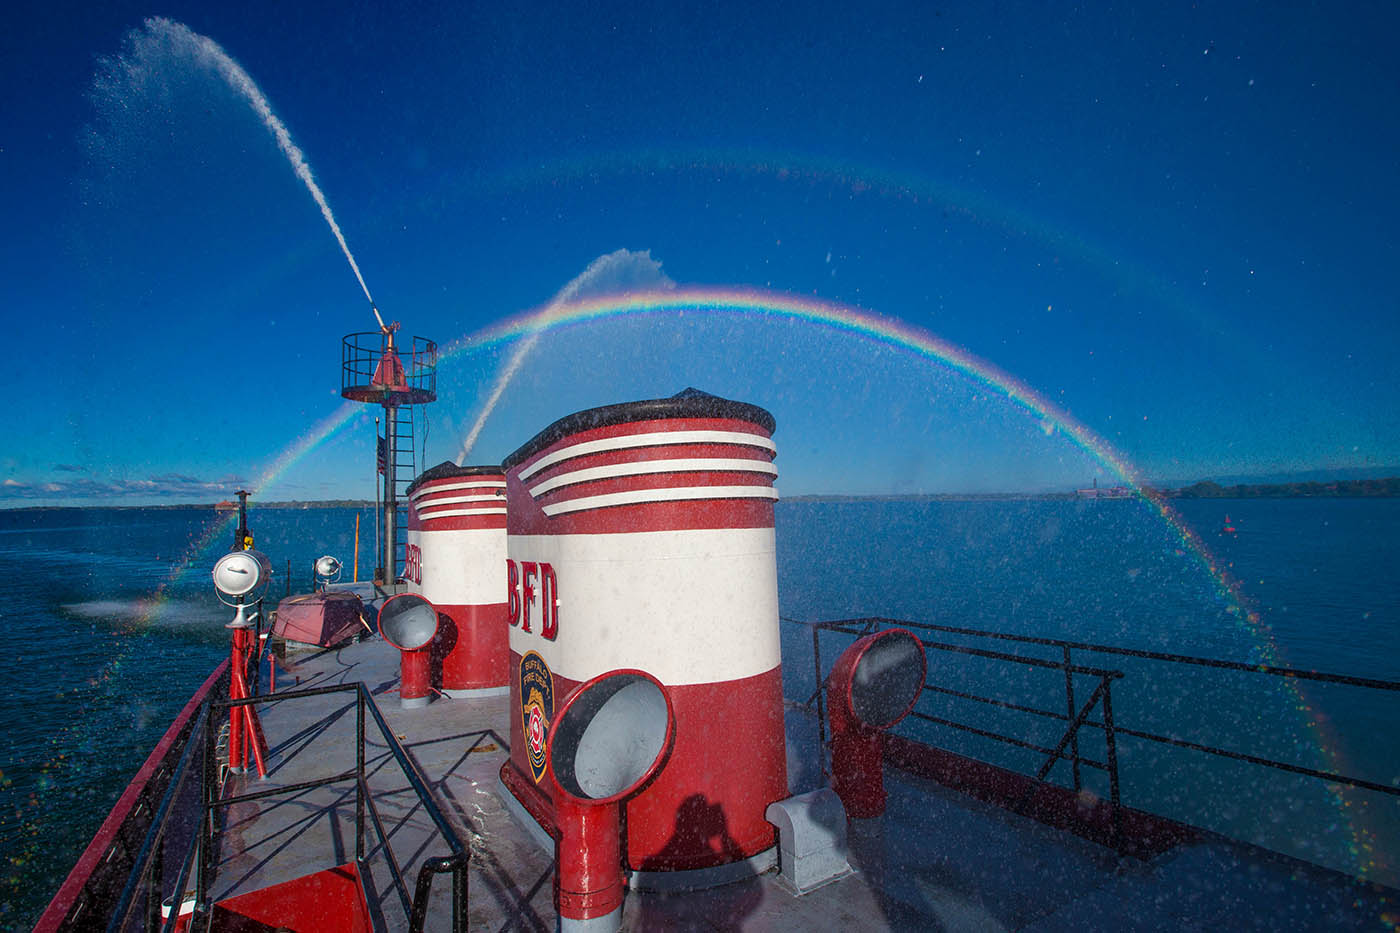 The spray of water cannons in the mornng sun creates rainbows aboard the Edward M. Cotter, Friday morning, Oct. 14, 2016. (Derek Gee/Buffalo News)